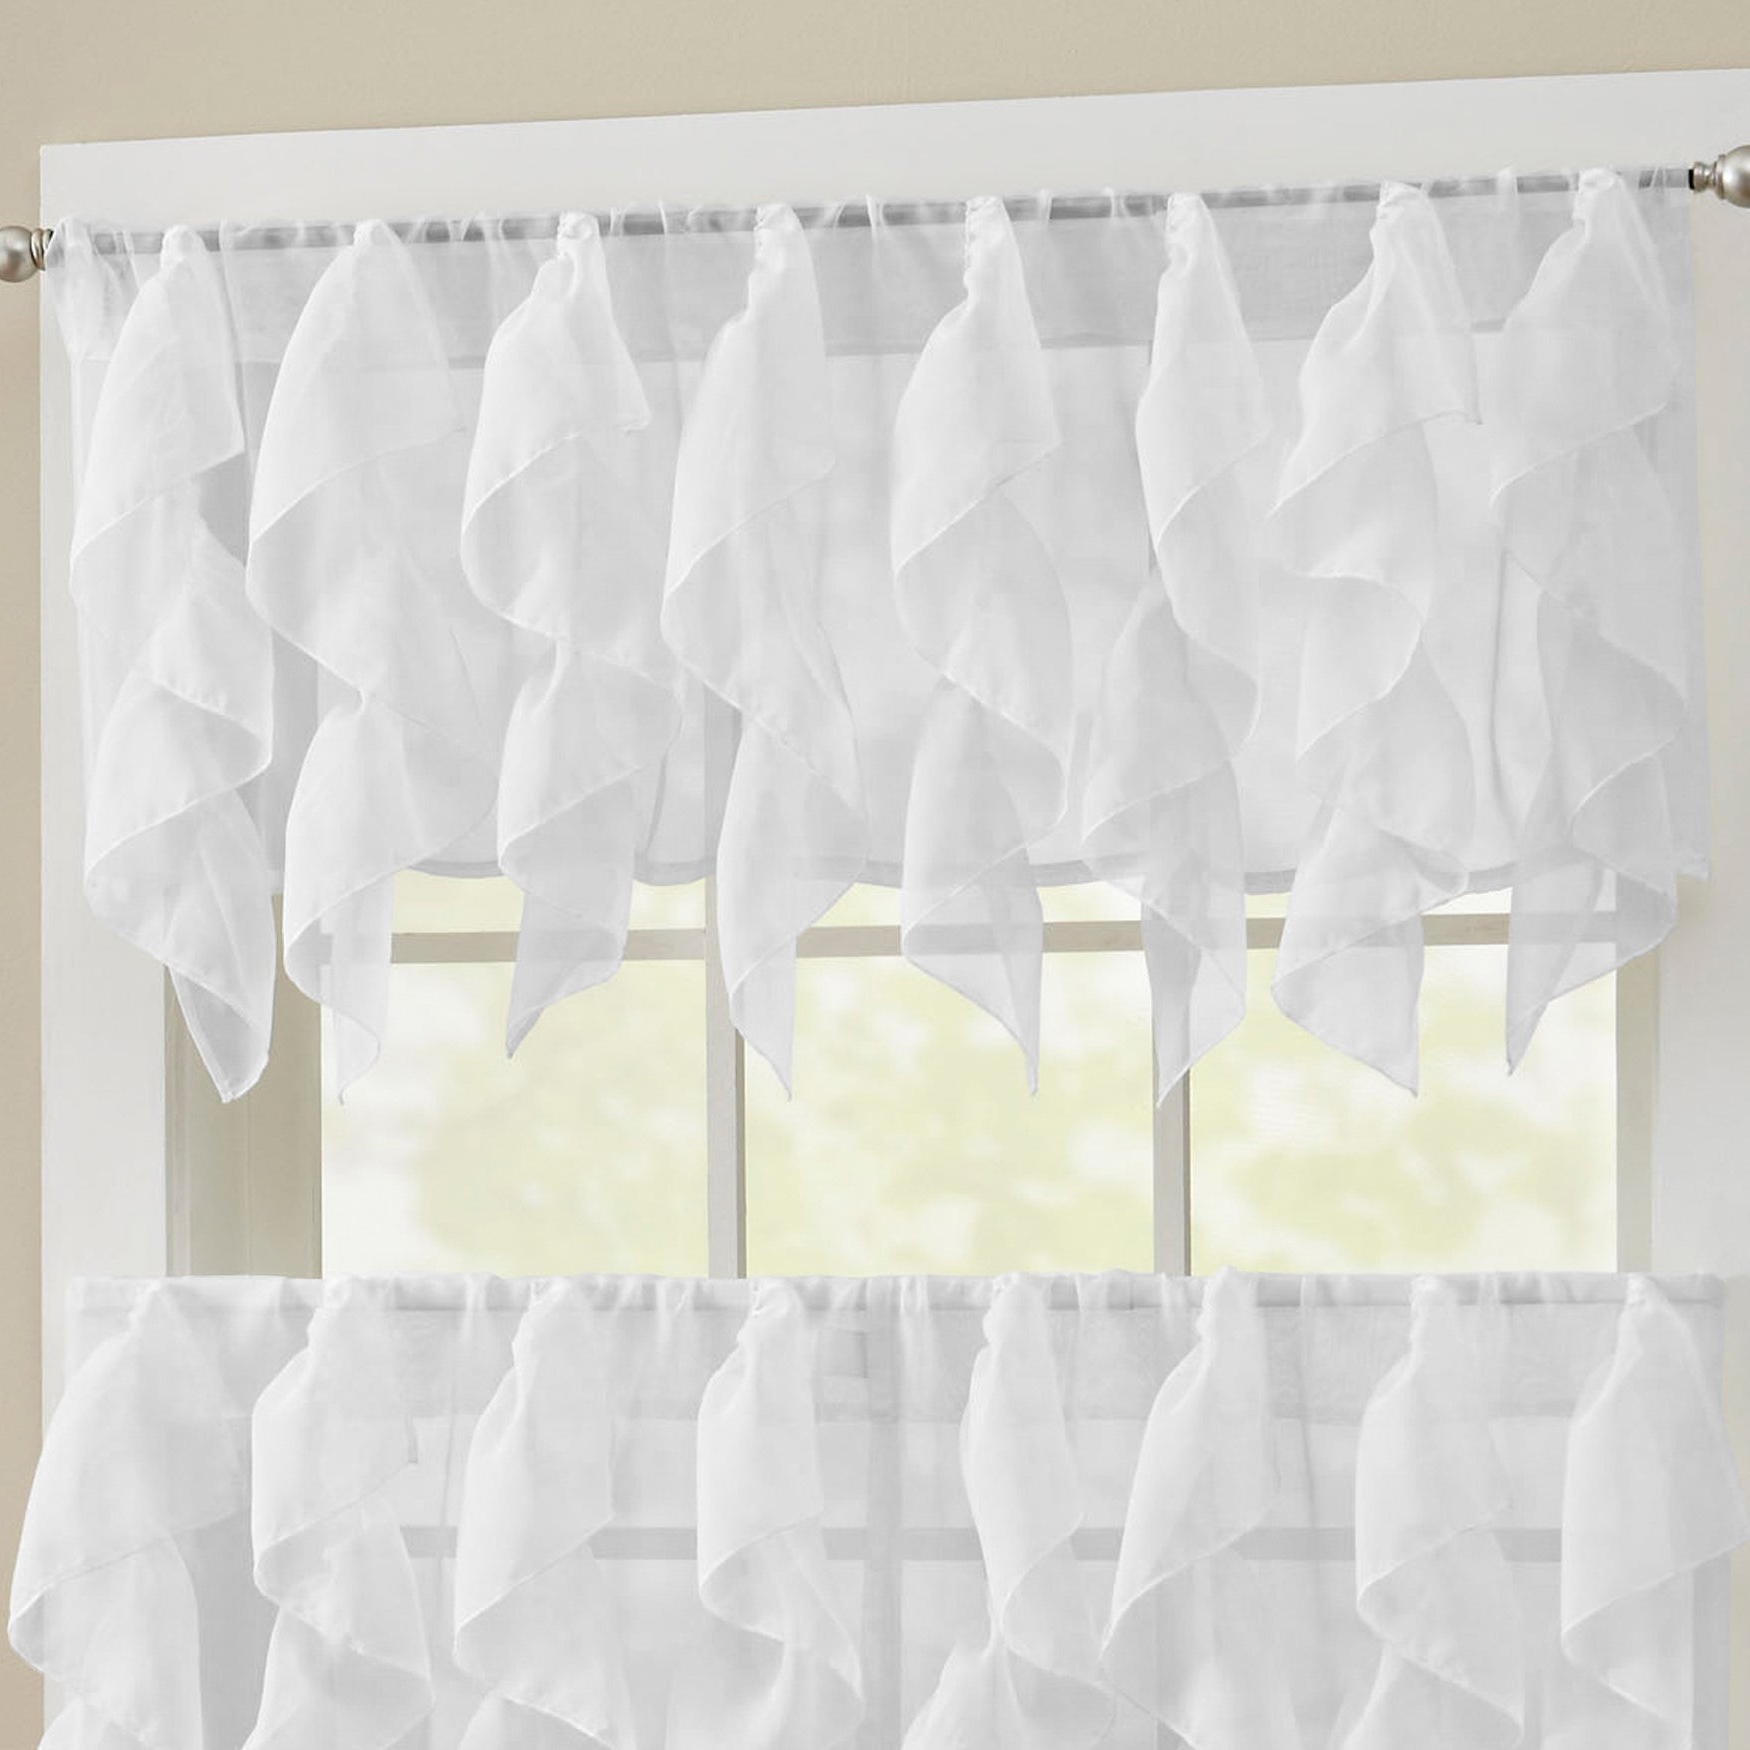 Popular Chic Sheer Voile Vertical Ruffled Window Curtain Tiers Throughout Chic Sheer Voile Vertical Ruffled Tier Window Curtain Valance And Tier (View 8 of 20)